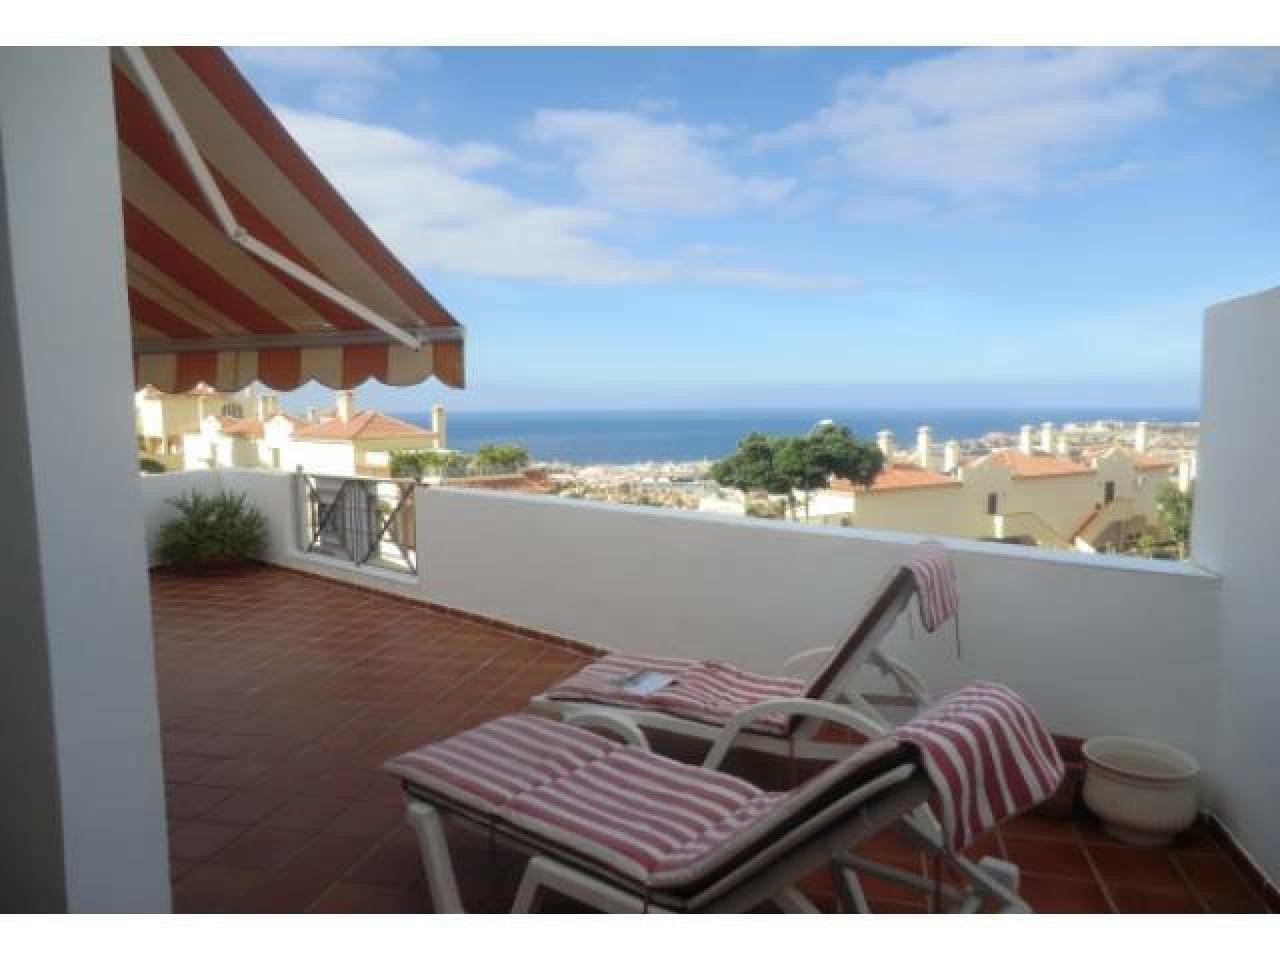 Real estate in Tenerife for sale » #99 - 3